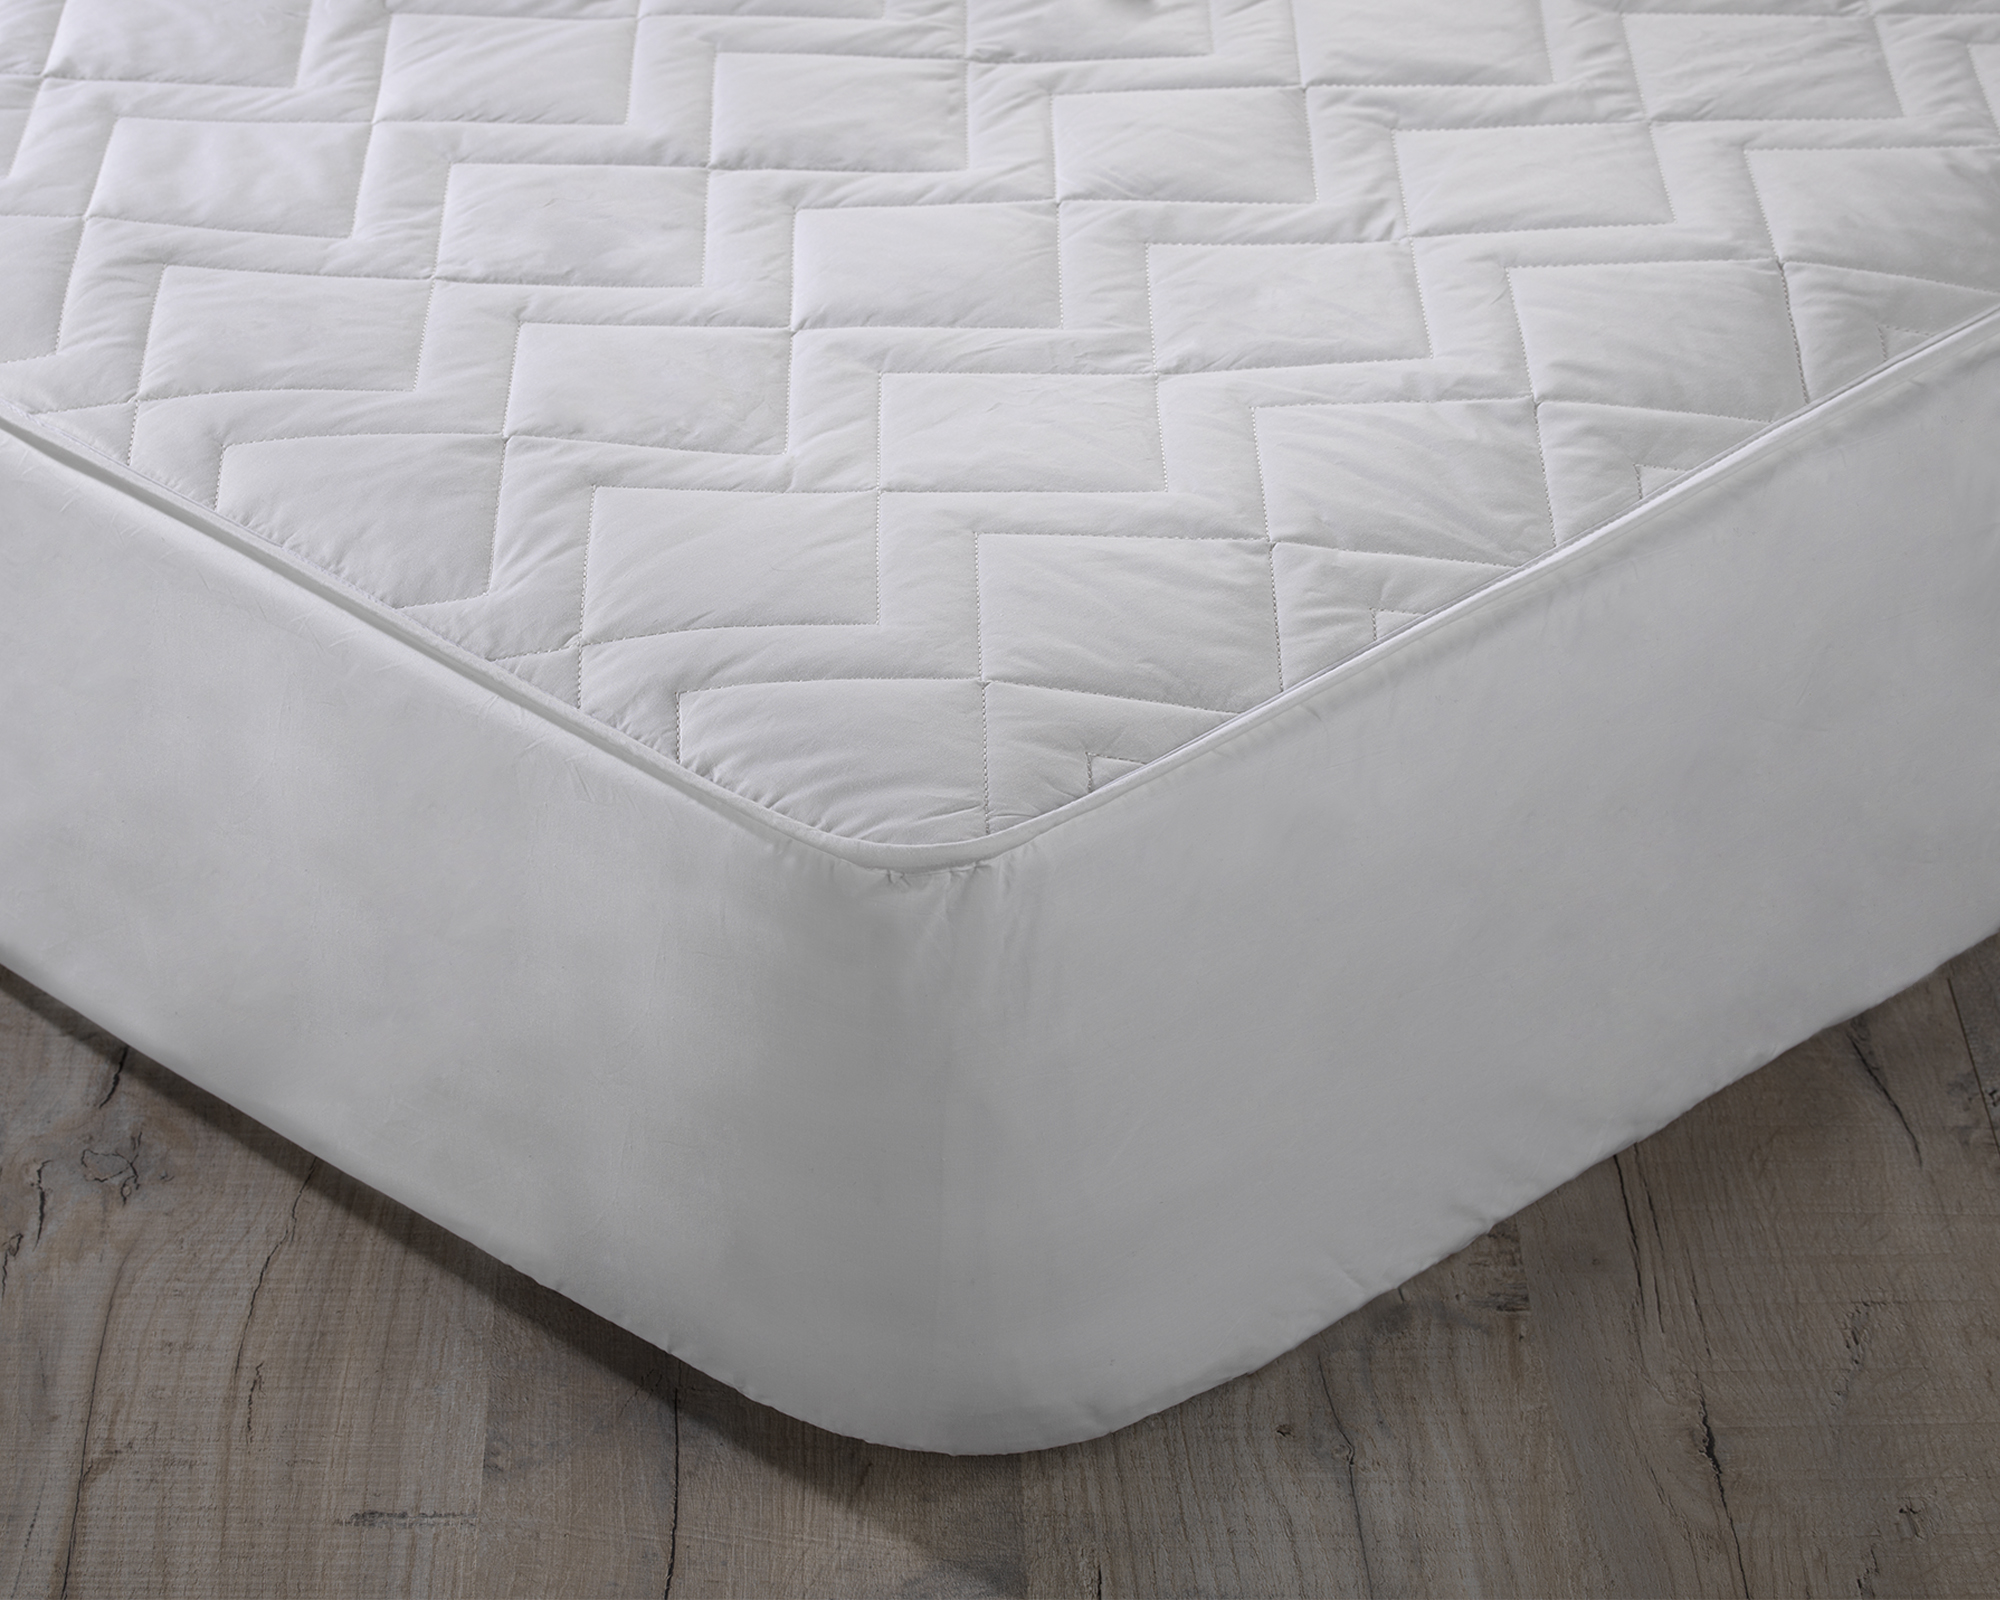 mattress sensations sizes visco cover elastic walmart topper ip spa wool com multiple airflow